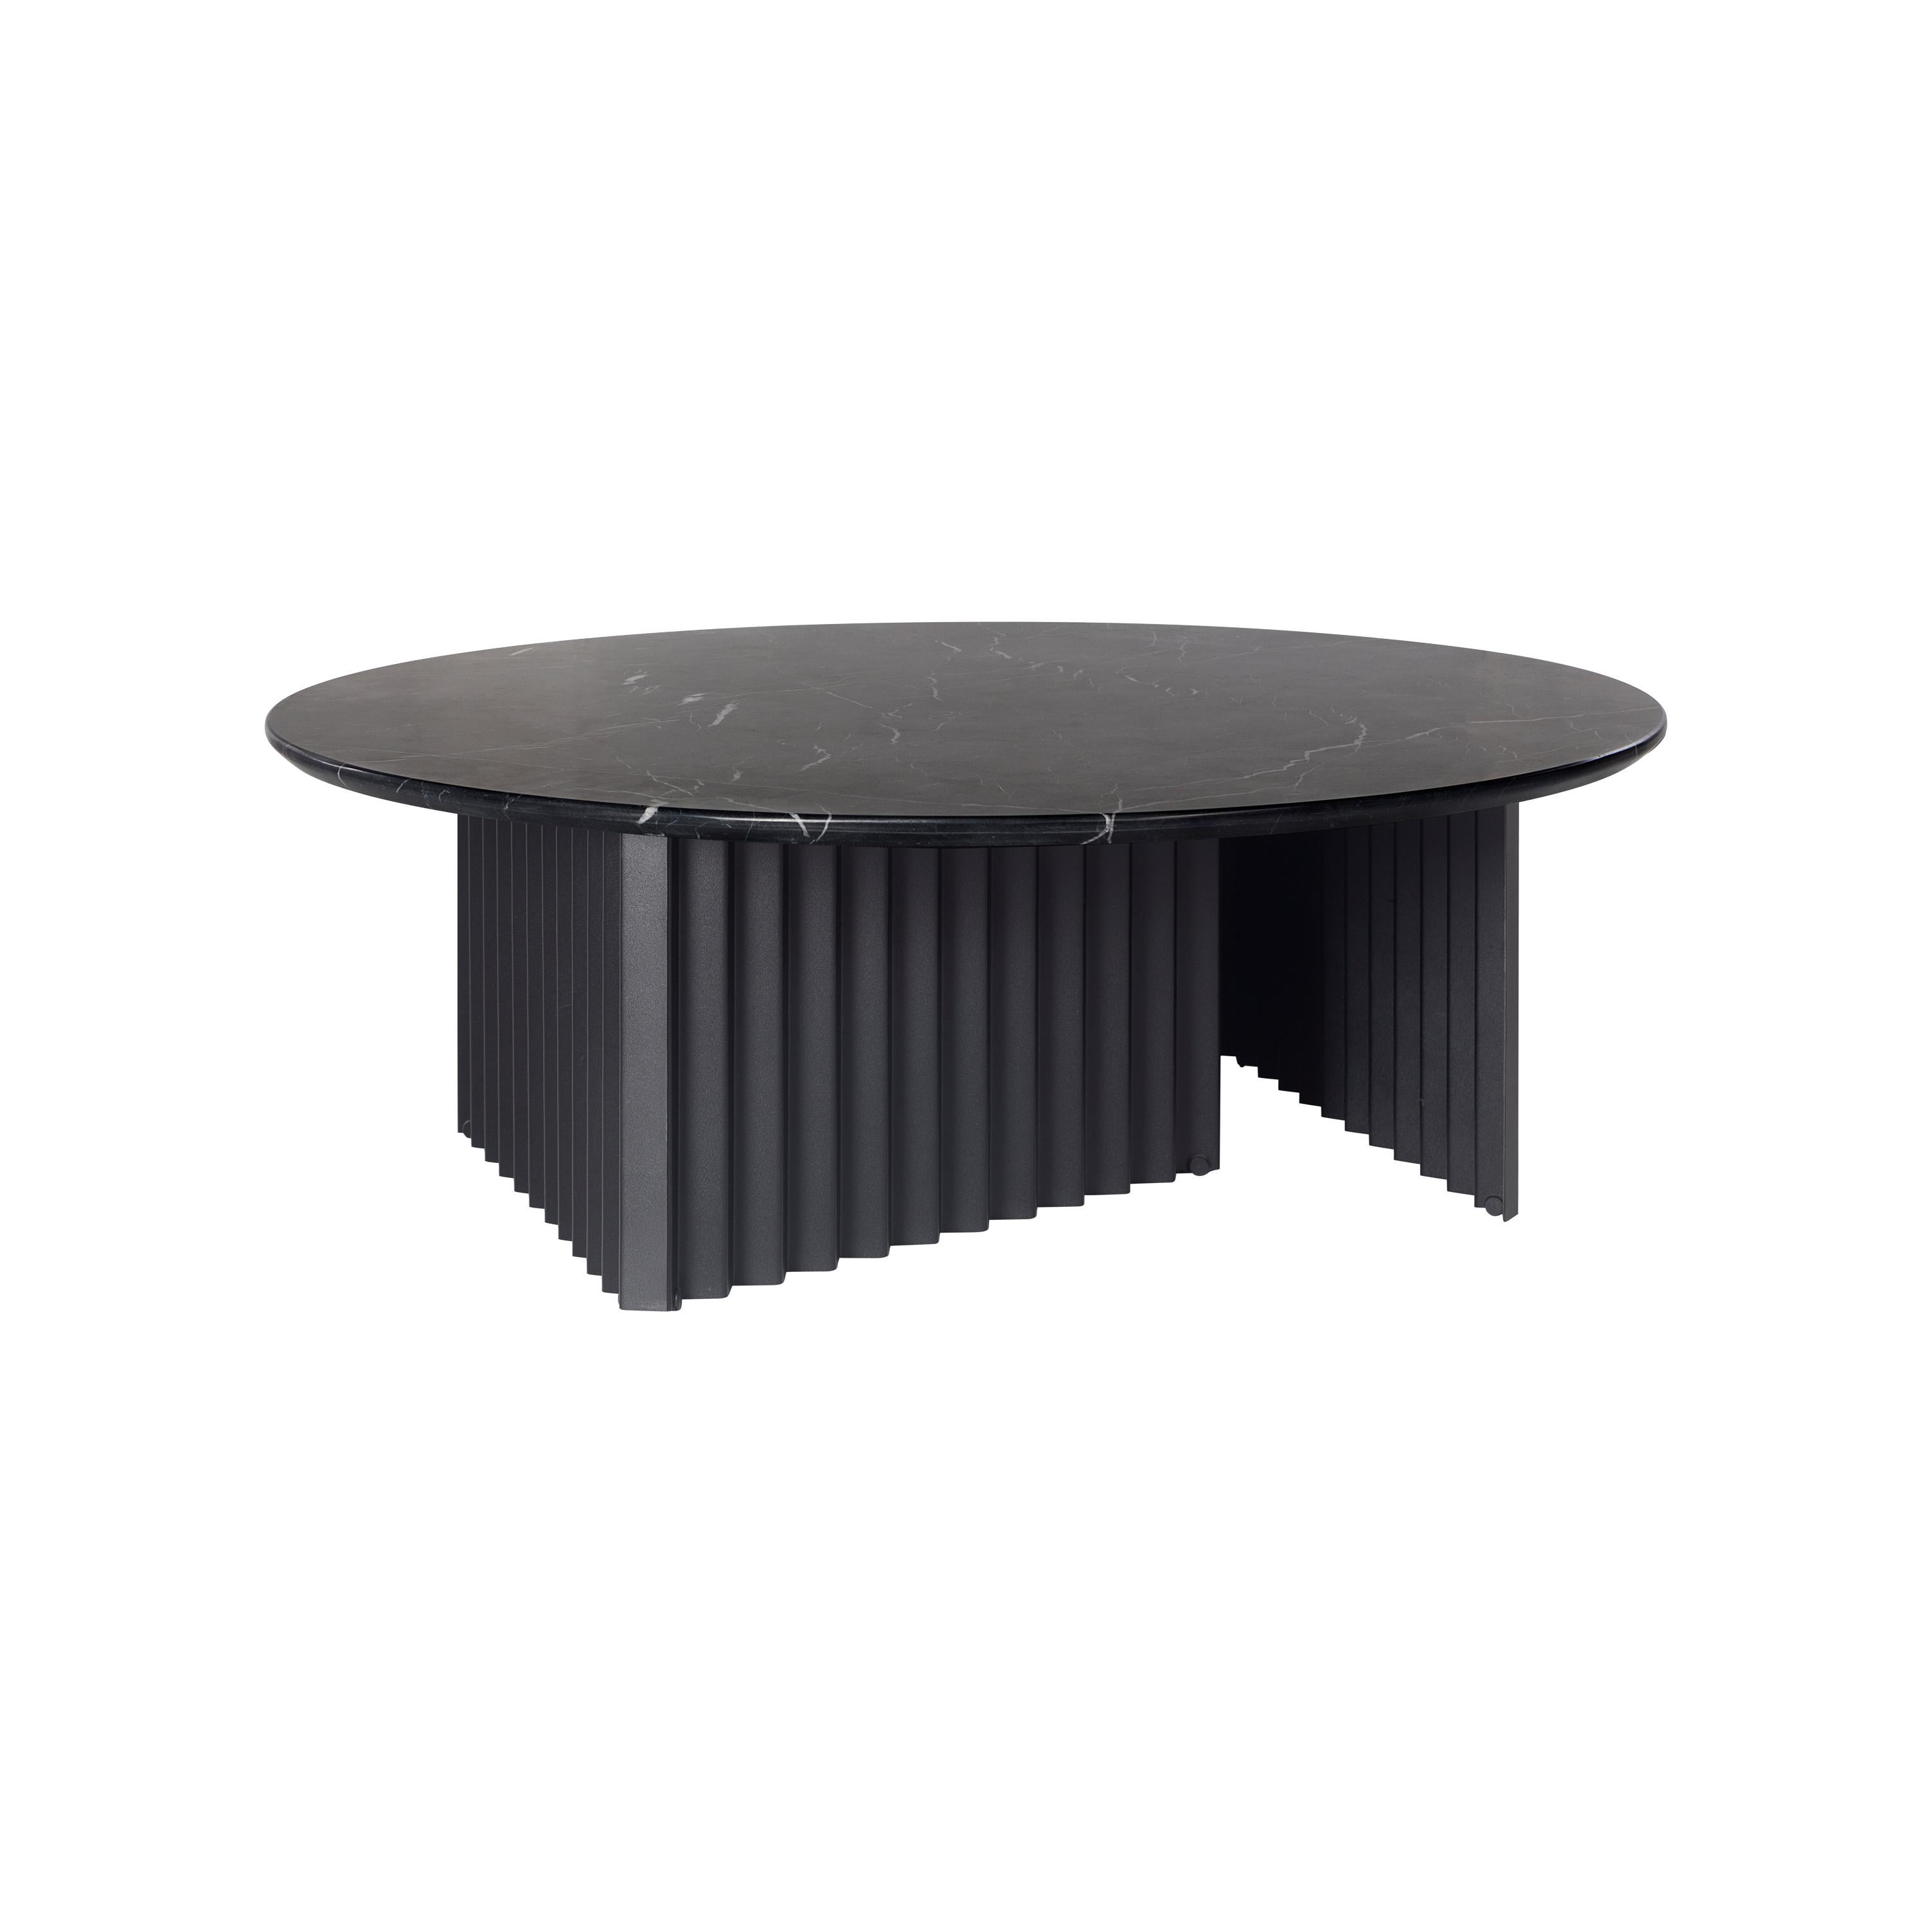 RS Barcelona Plec Round Large Table in Black Marble by A.P.O.